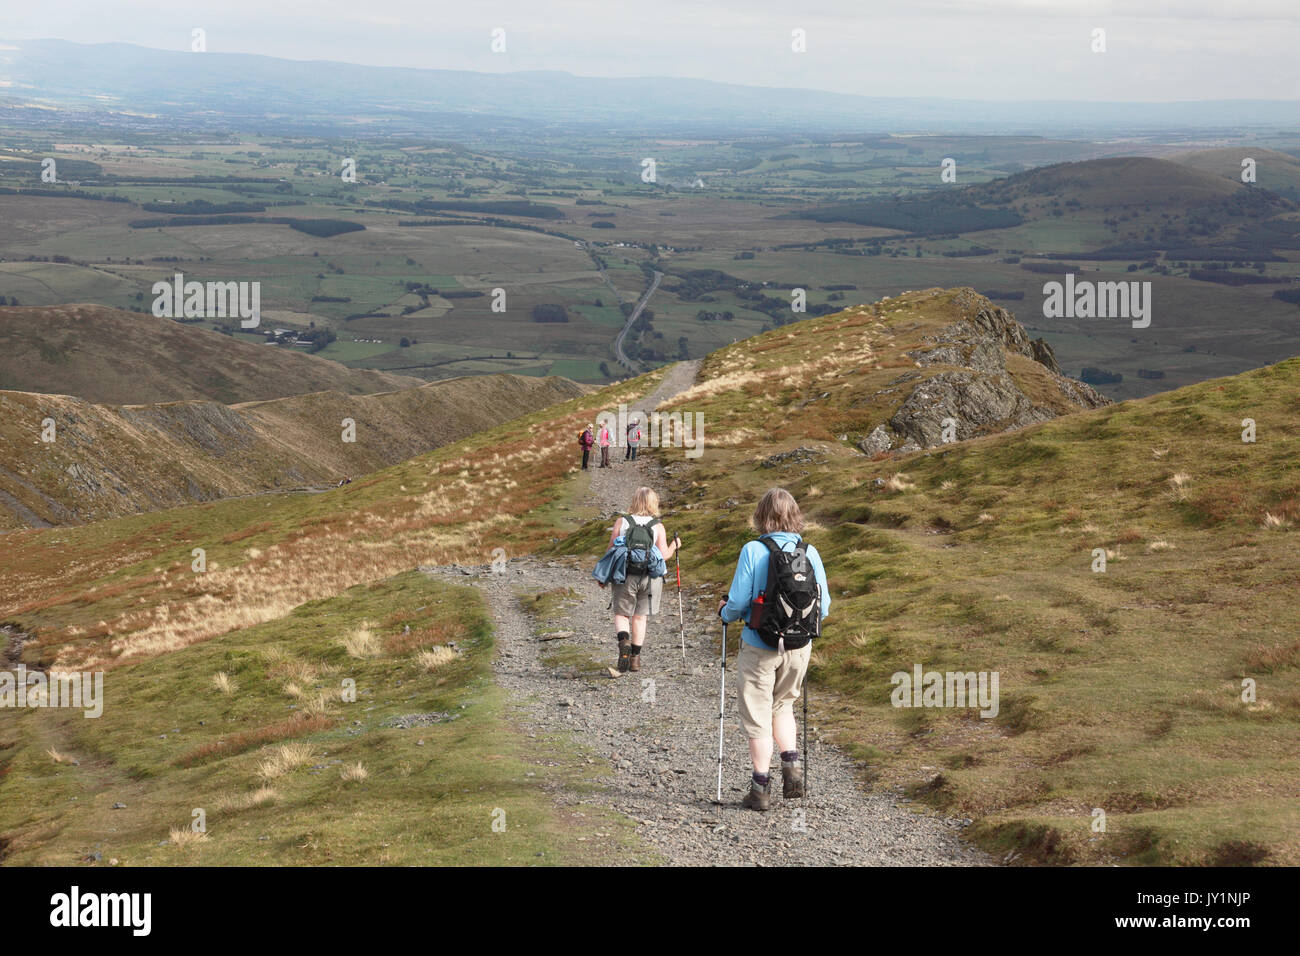 Descending Blencathra in the Lake District on the Scales Fell path, looking east towards the Pennines - Stock Image